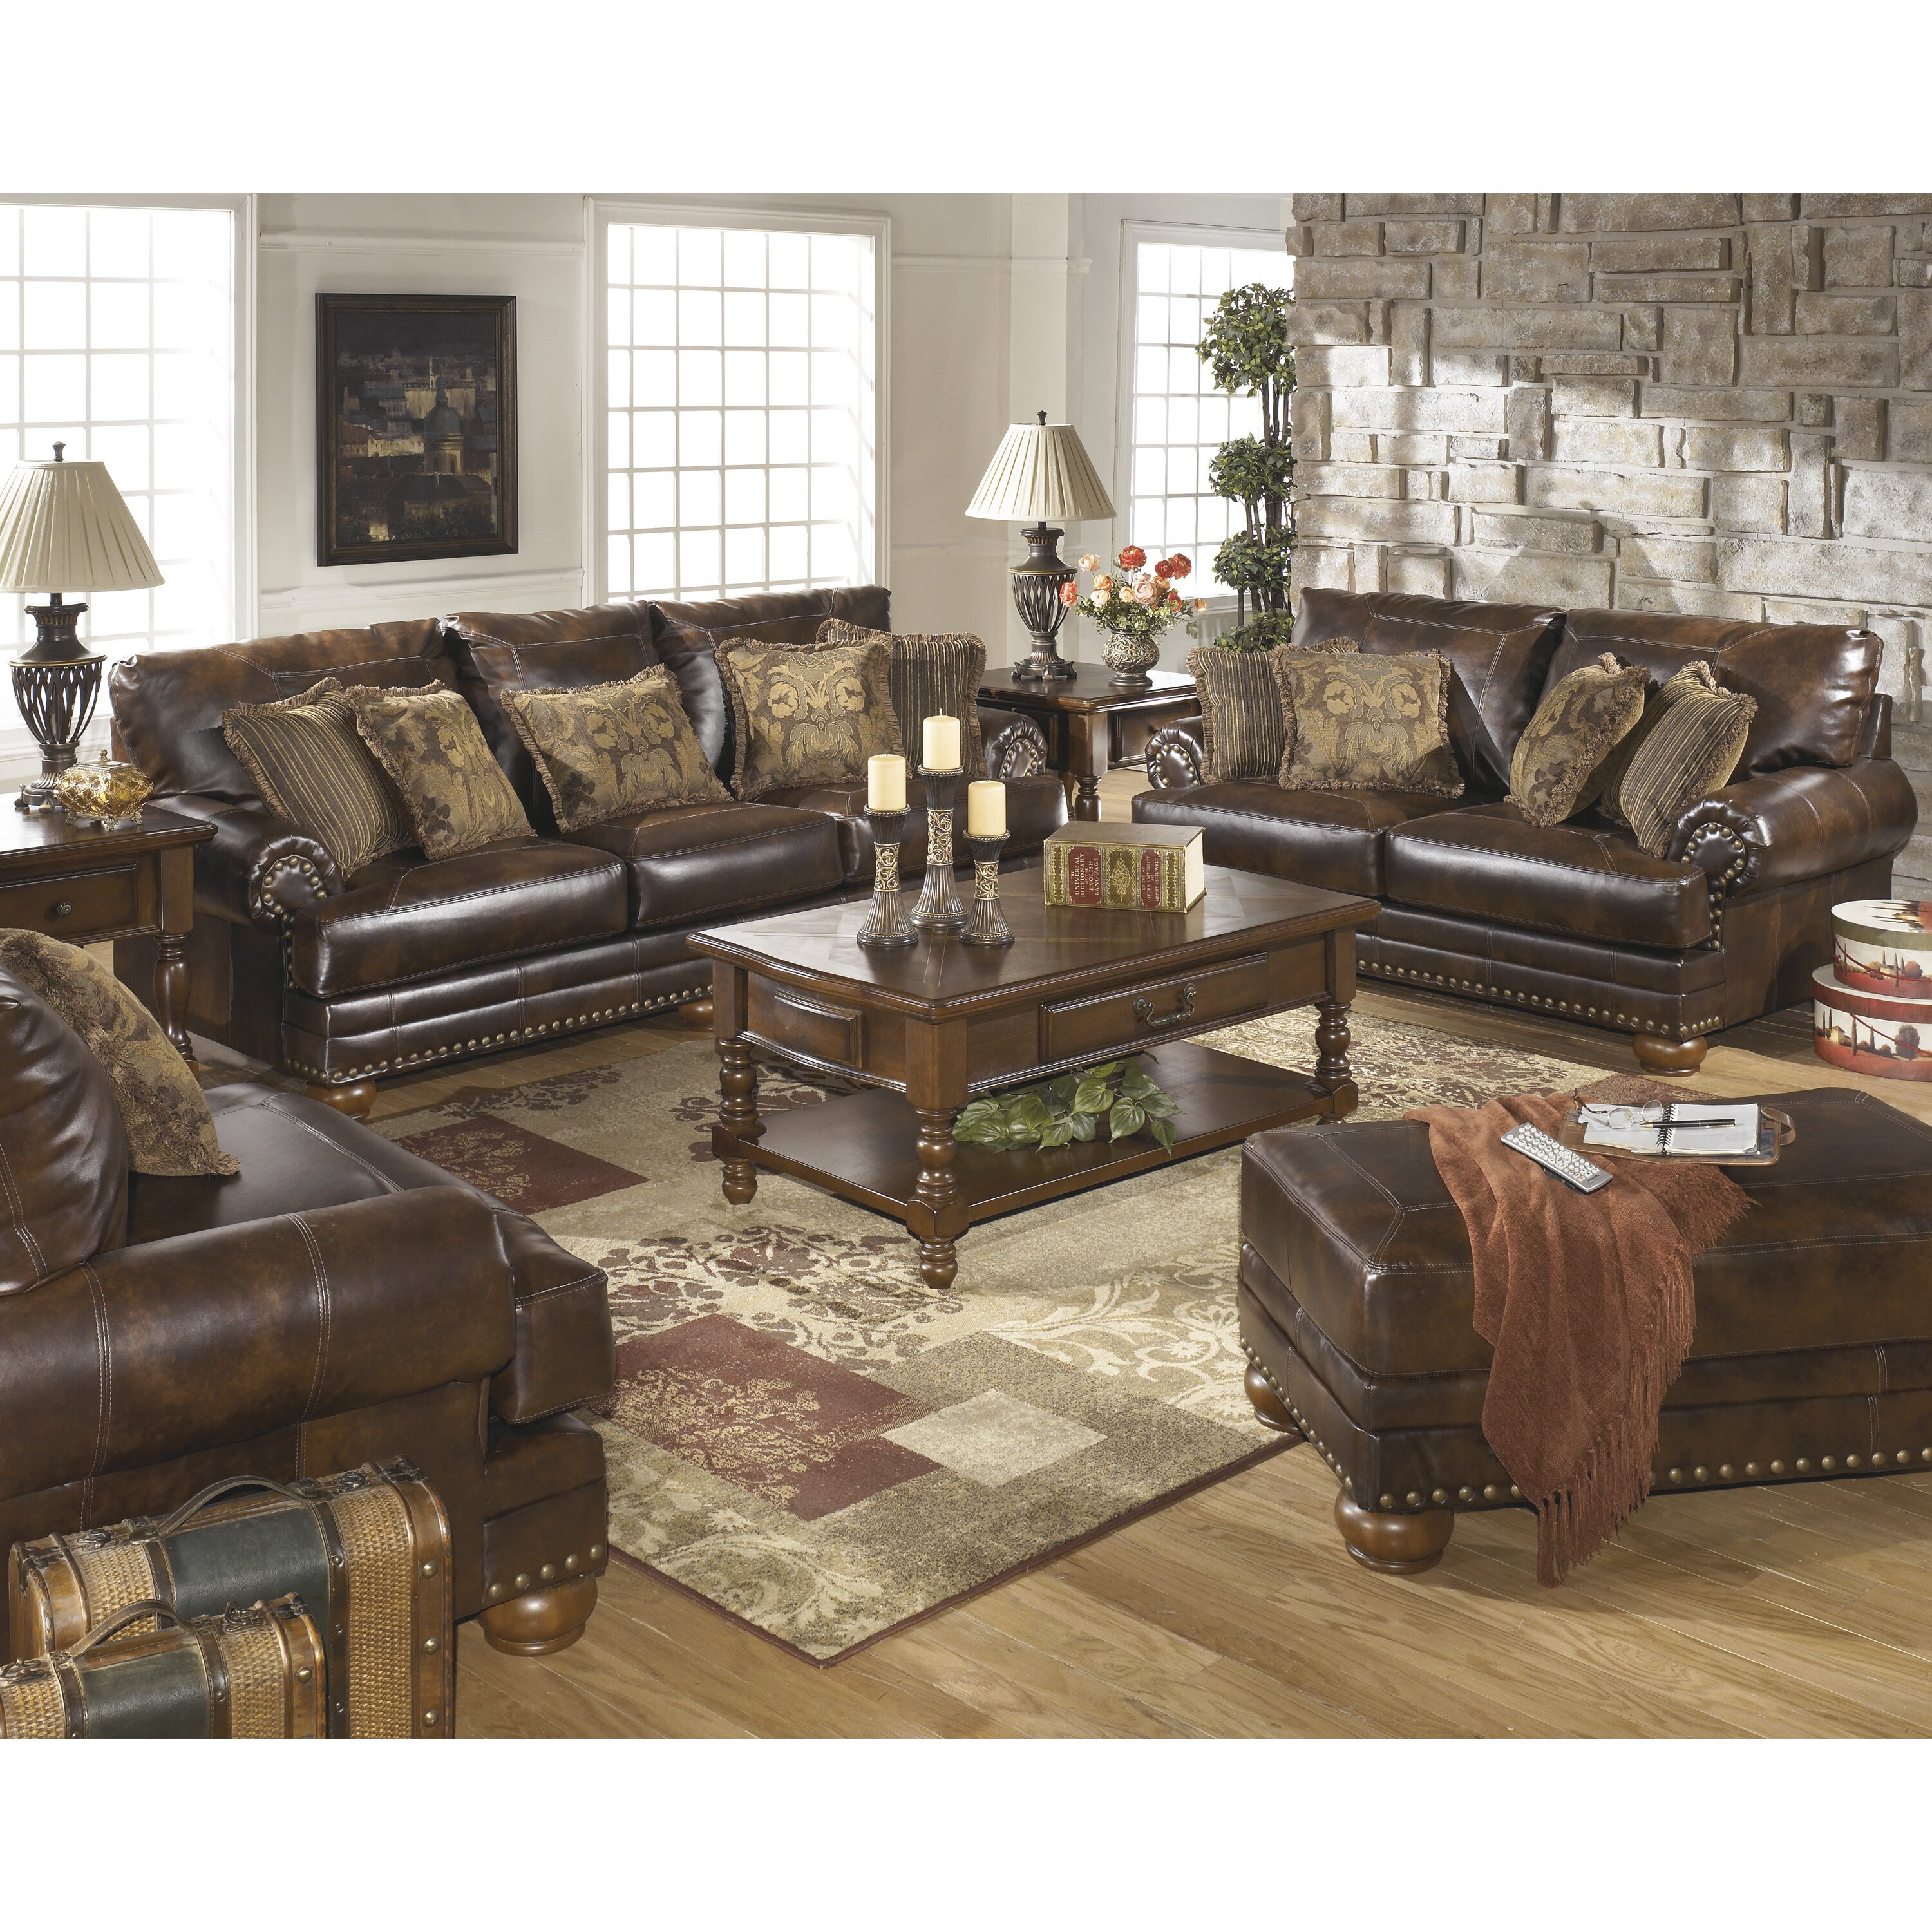 Signature Design By Ashley Leighton Leather Sofa Reviews